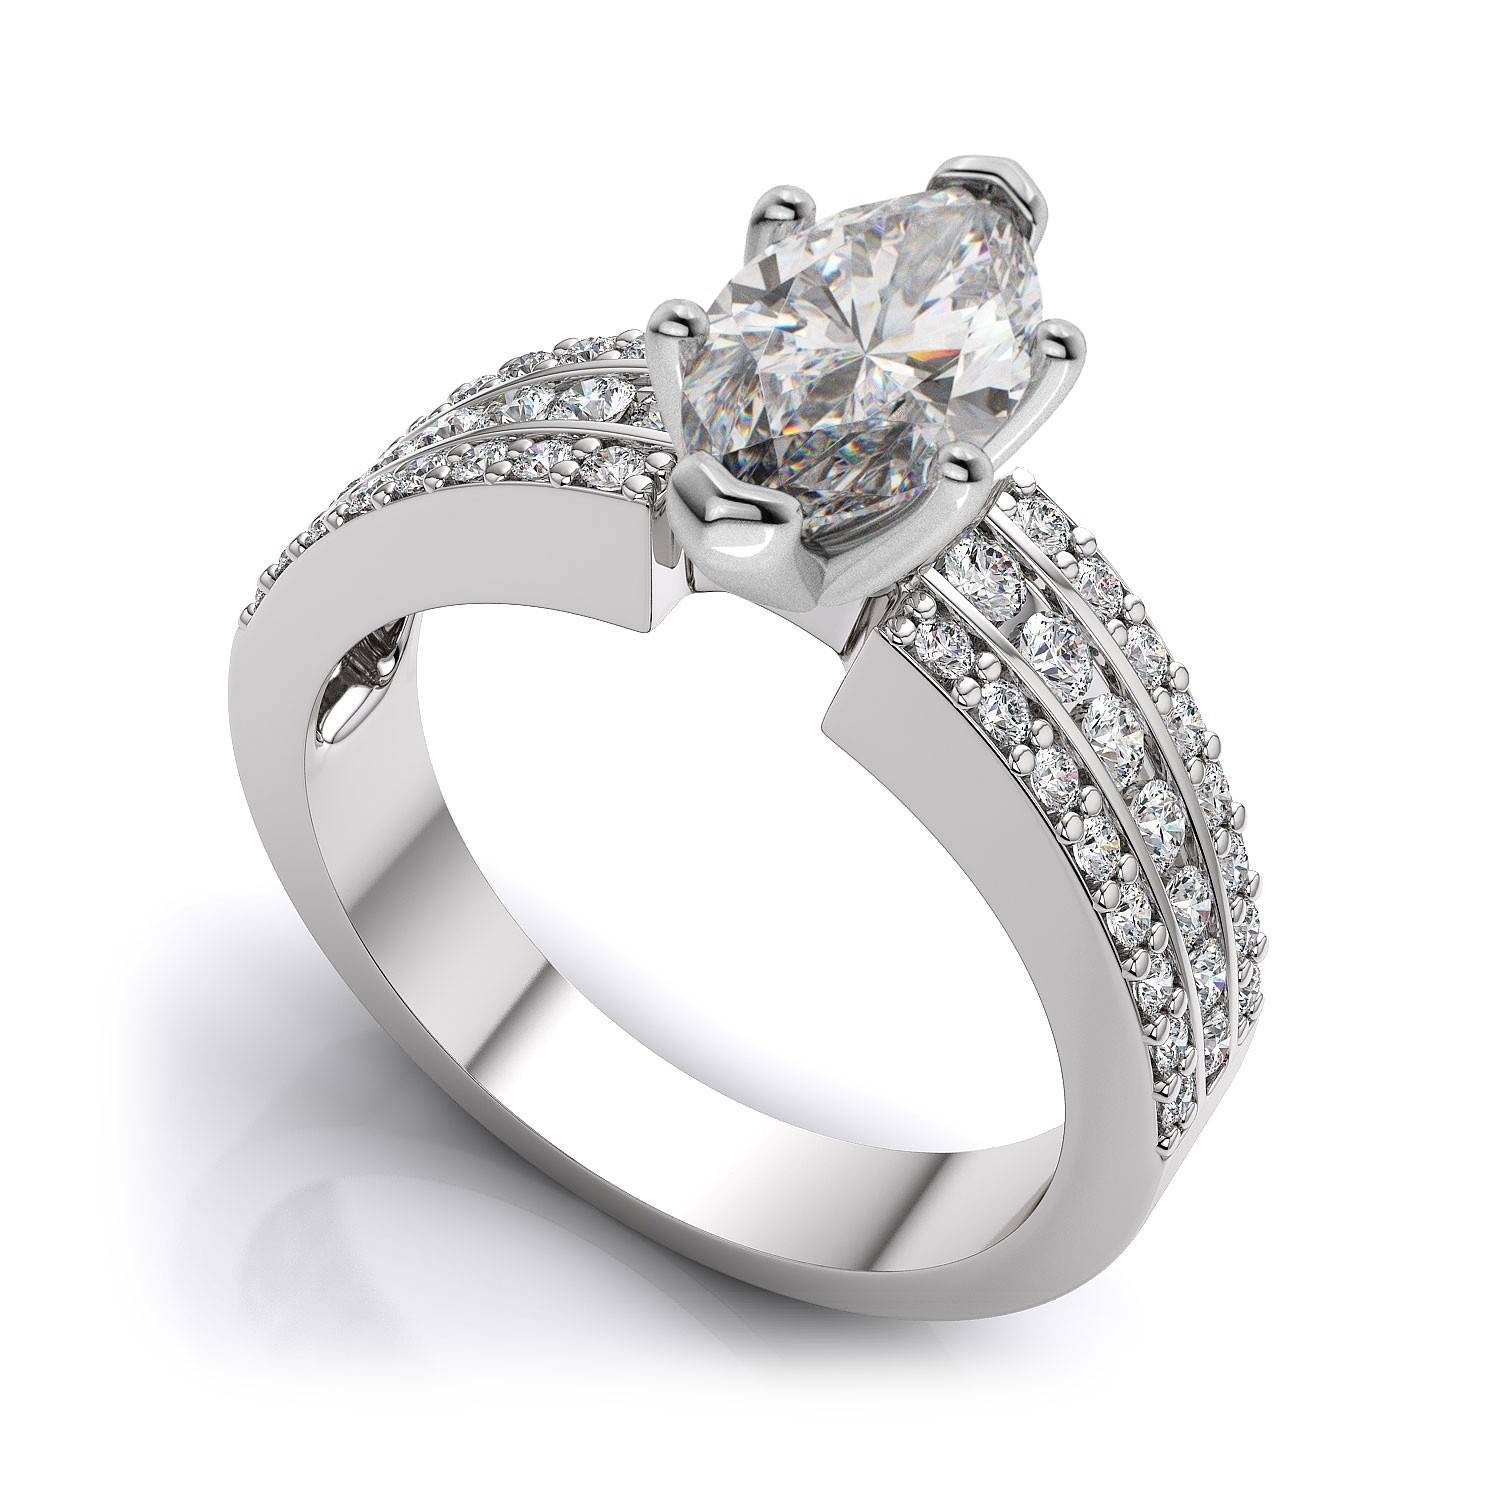 Channel Set Marquise Cut Sidestones Engagement Ring Setting In 14K Inside Marquise Cut Diamond Wedding Rings Sets (View 3 of 15)